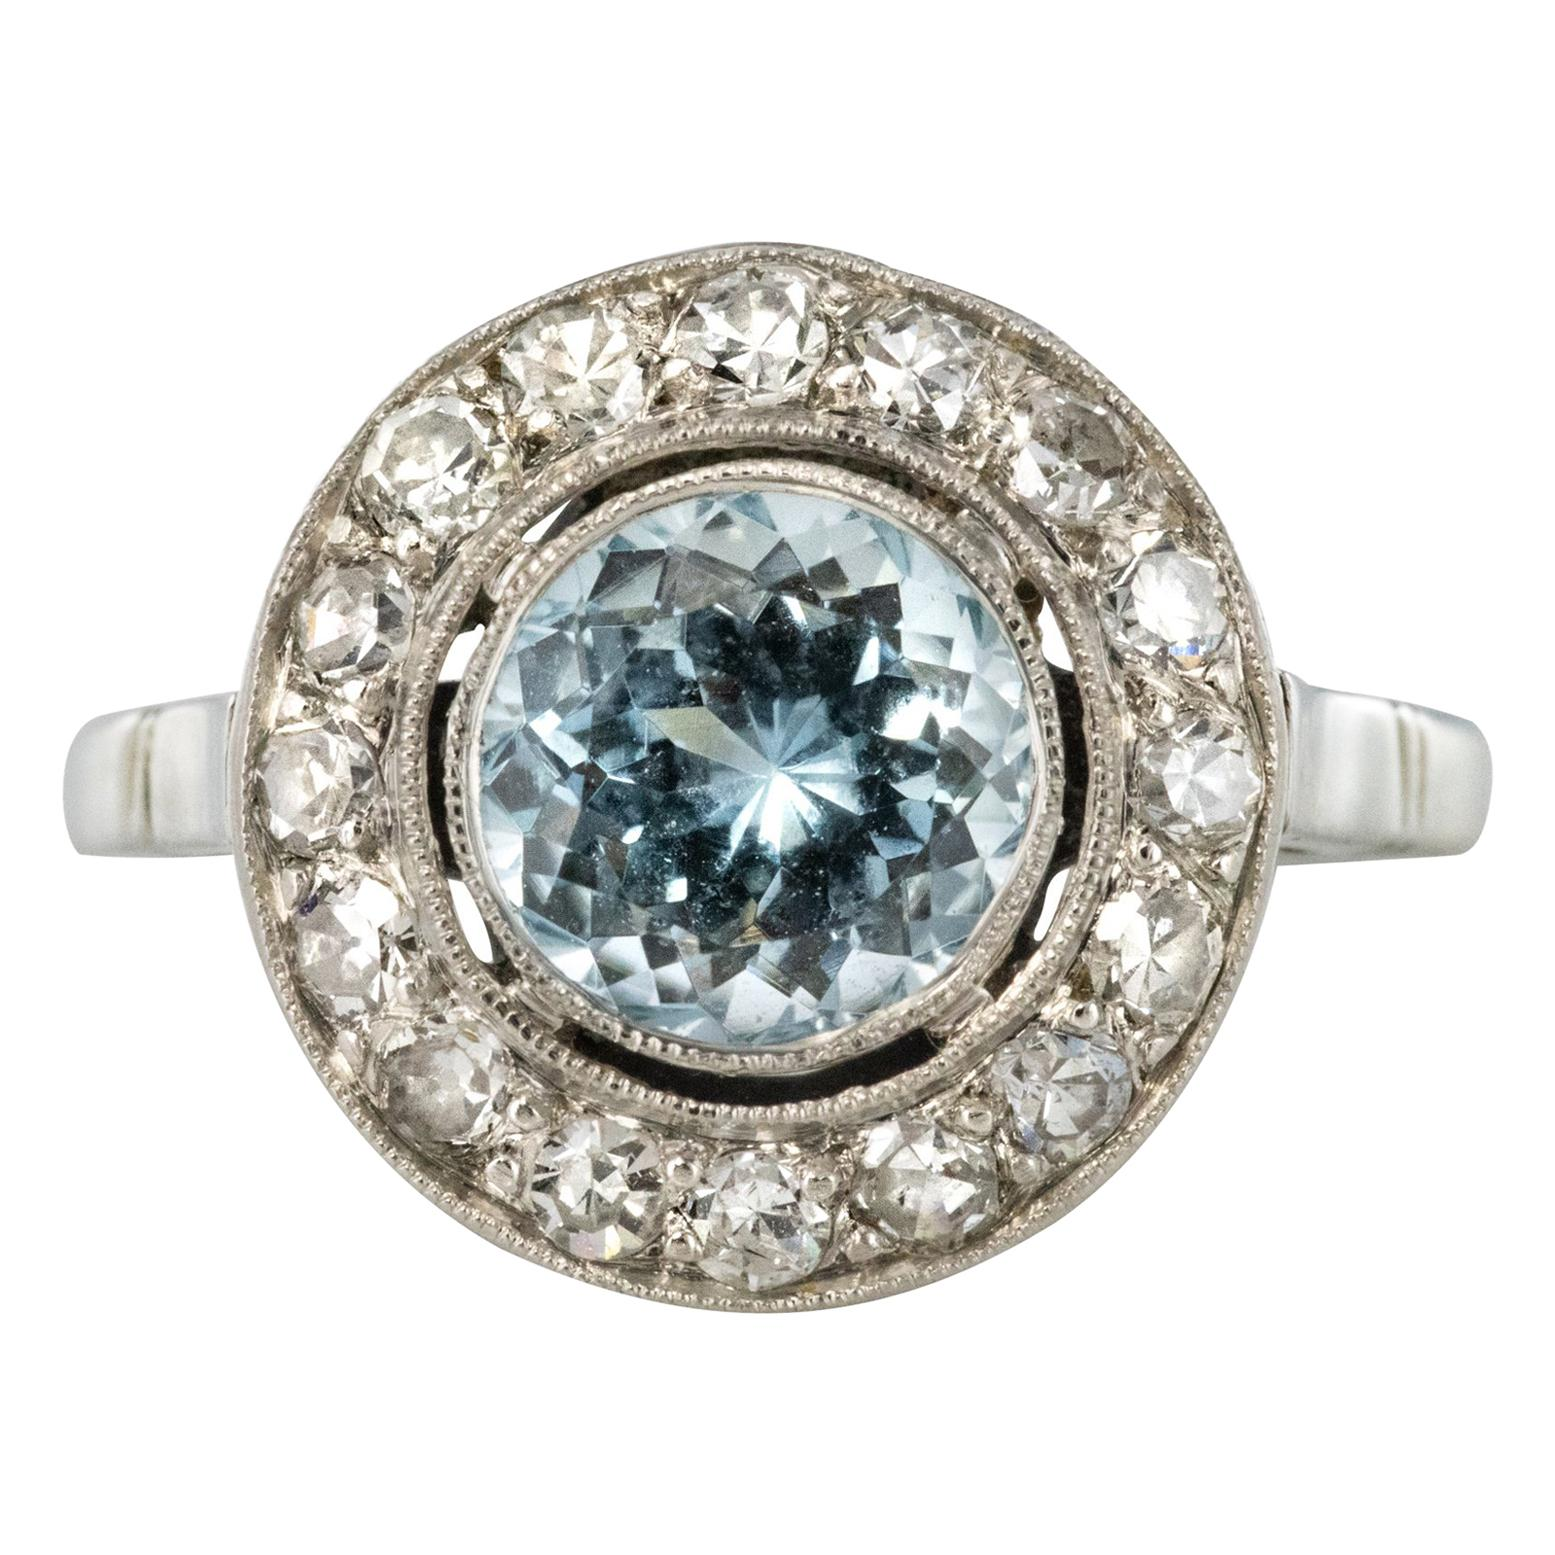 1848ecfa51 1930s Art Deco 1.33 Carat Aquamarine Diamonds 18 Karats White Gold Round  Ring at 1stdibs